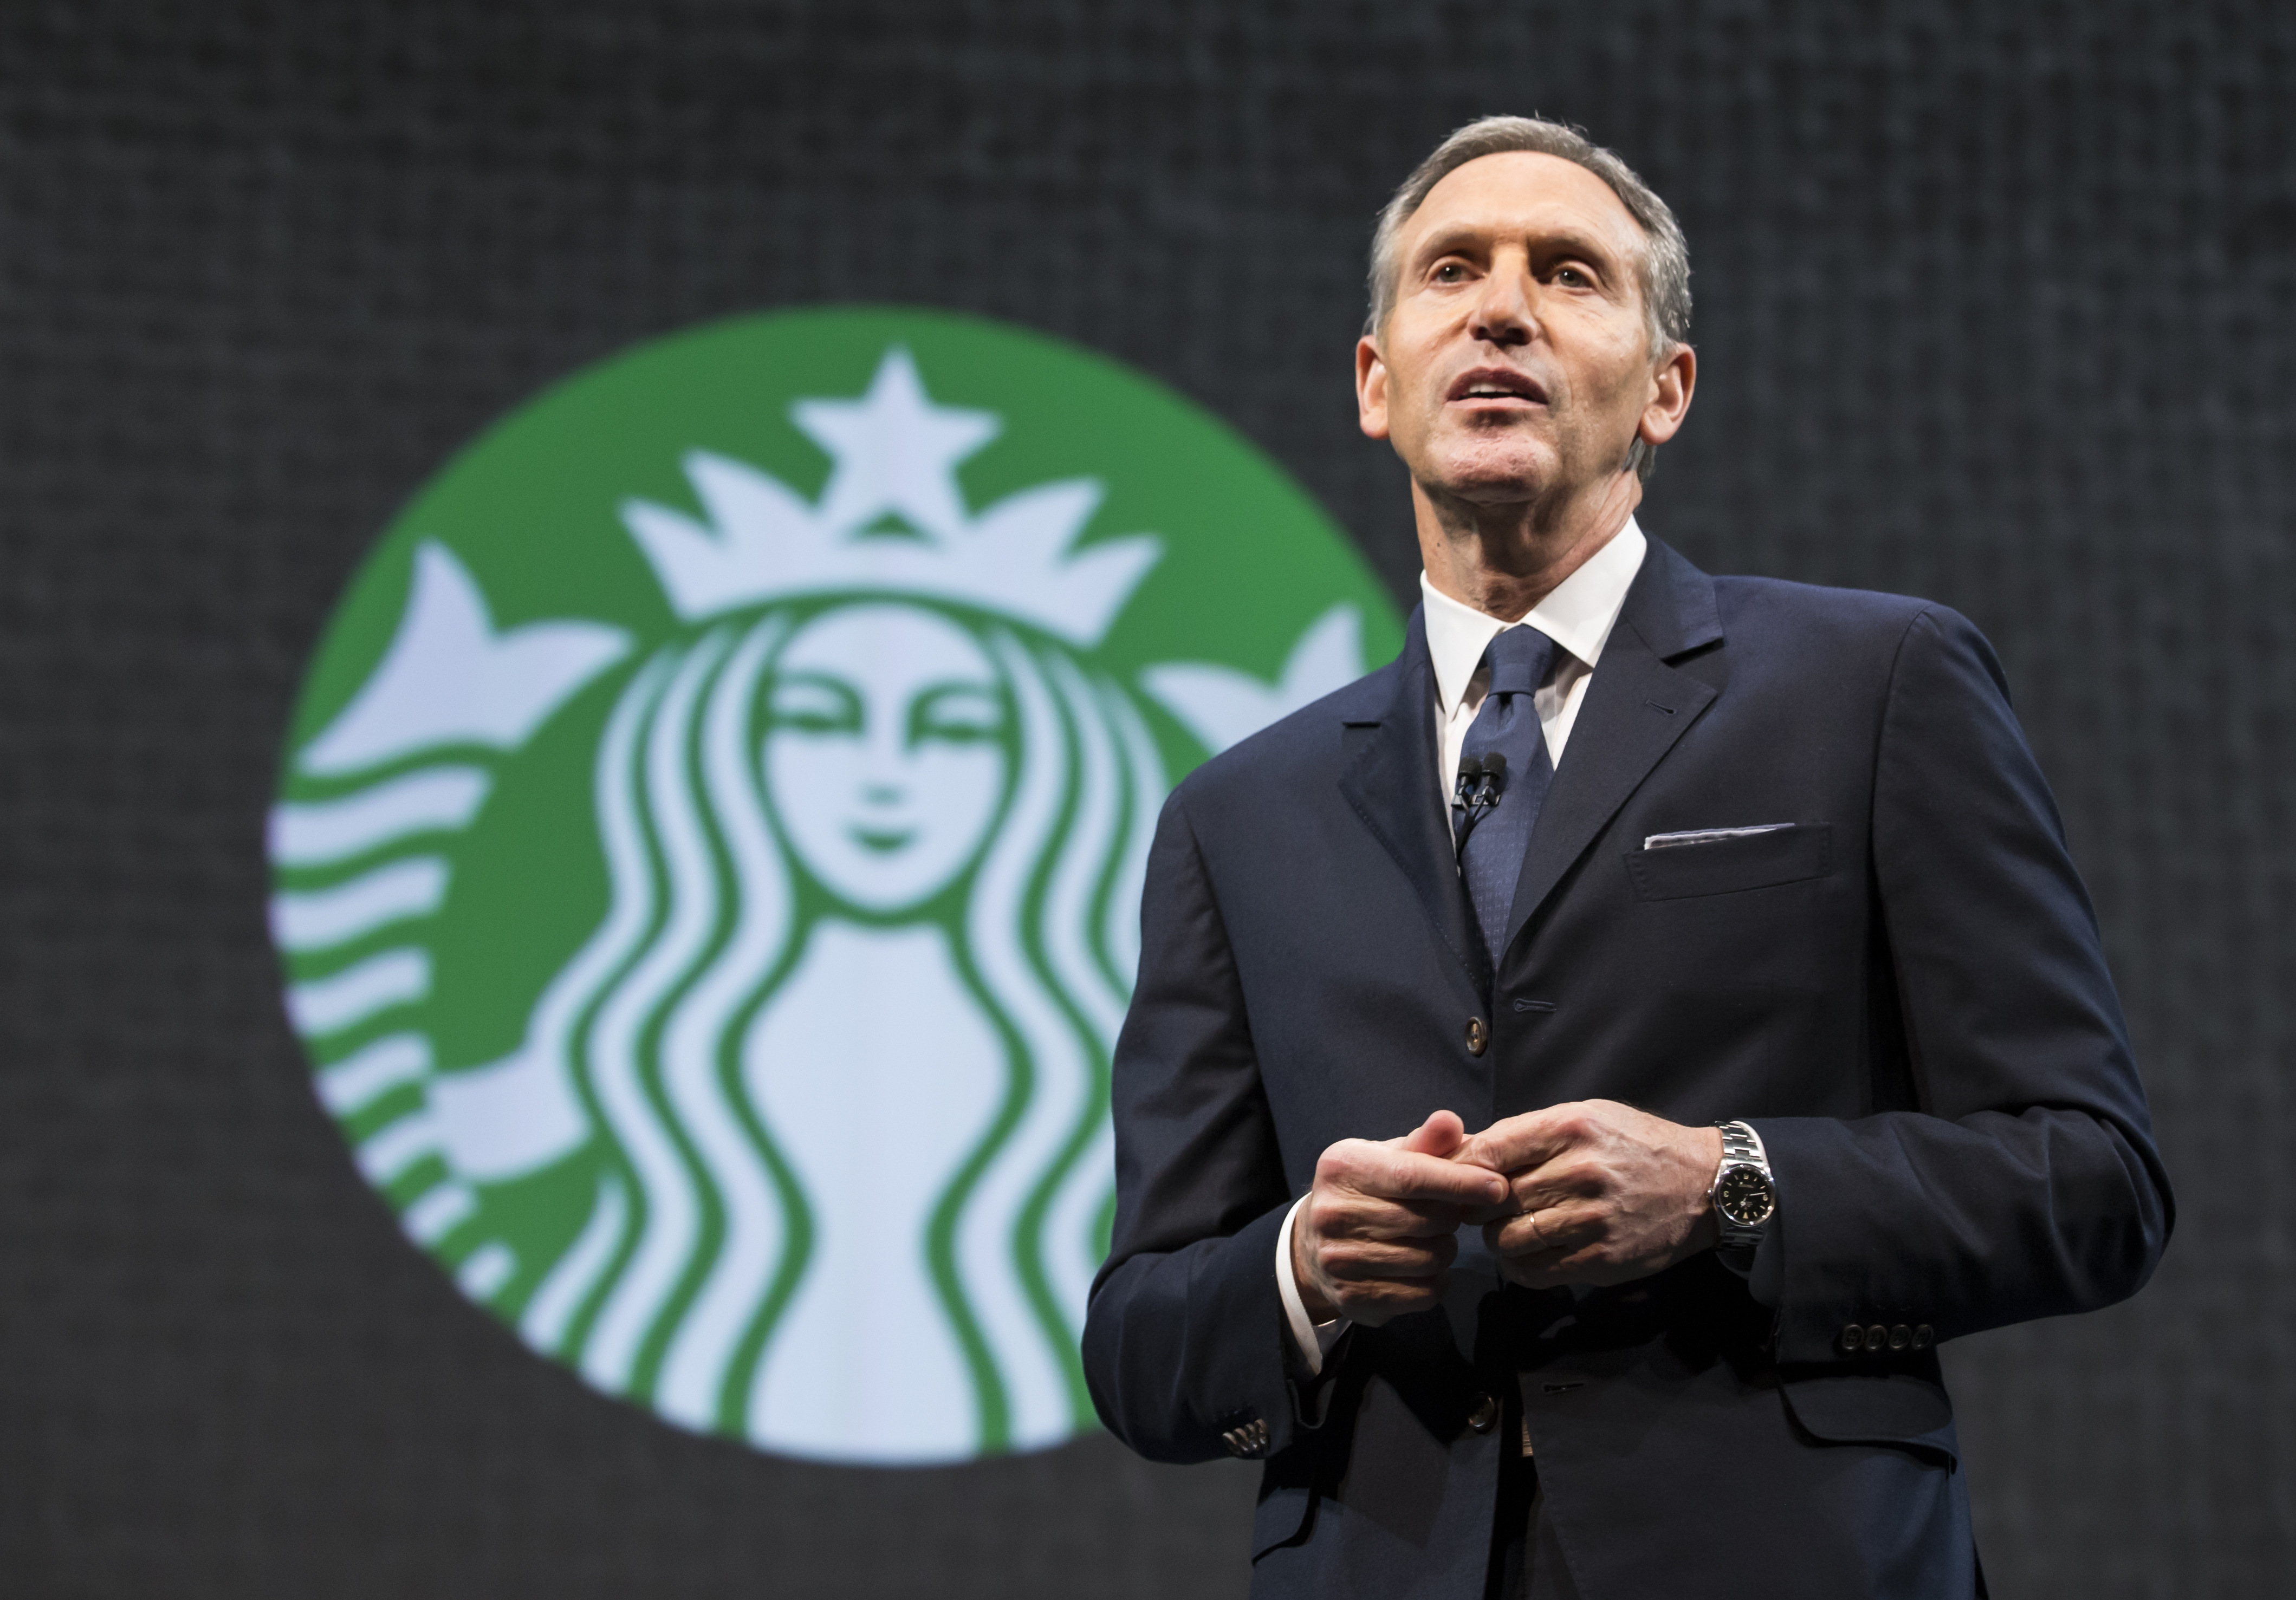 Starbucks Chairman and CEO Howard Schultz speaks during Starbucks annual shareholders meeting March 18, 2015 in Seattle, Washington.